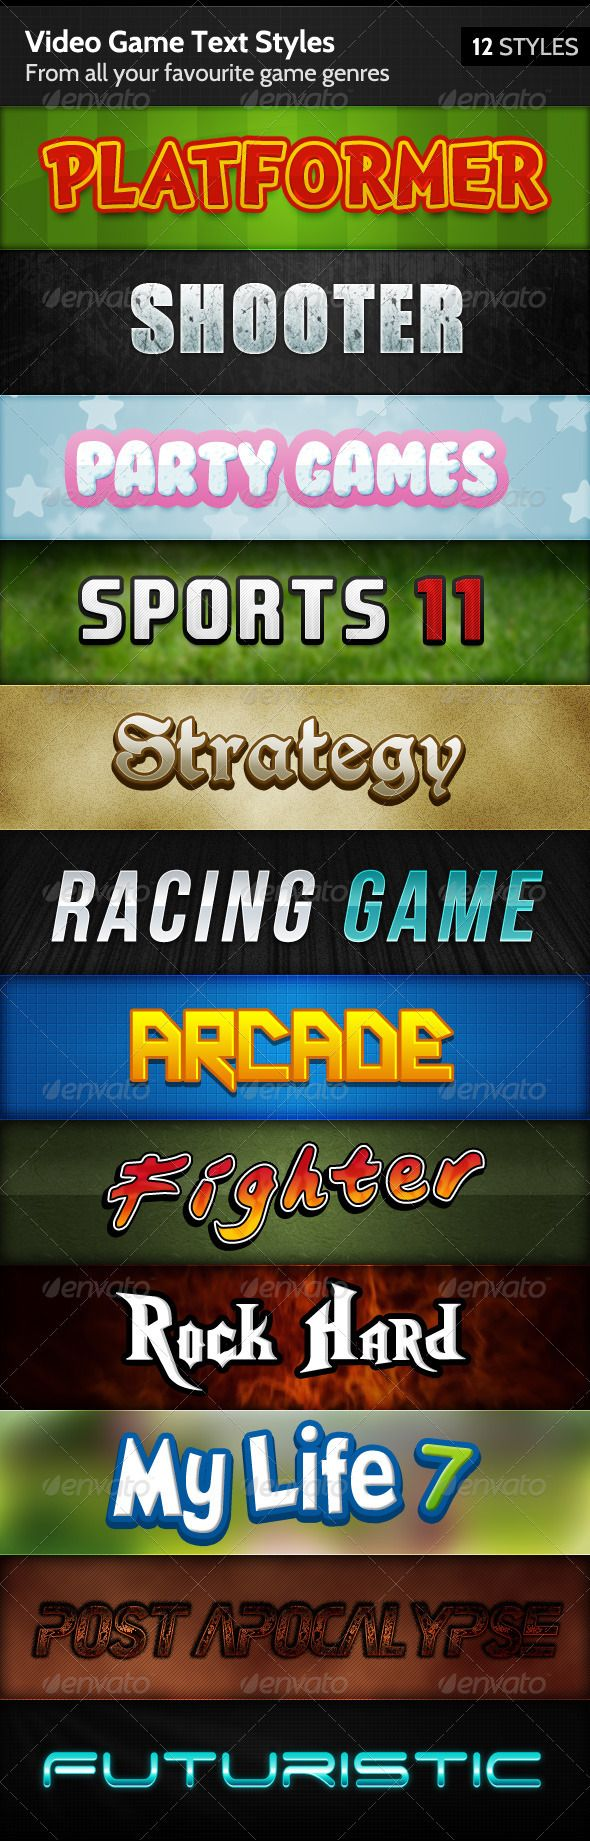 Video Game Text Styles